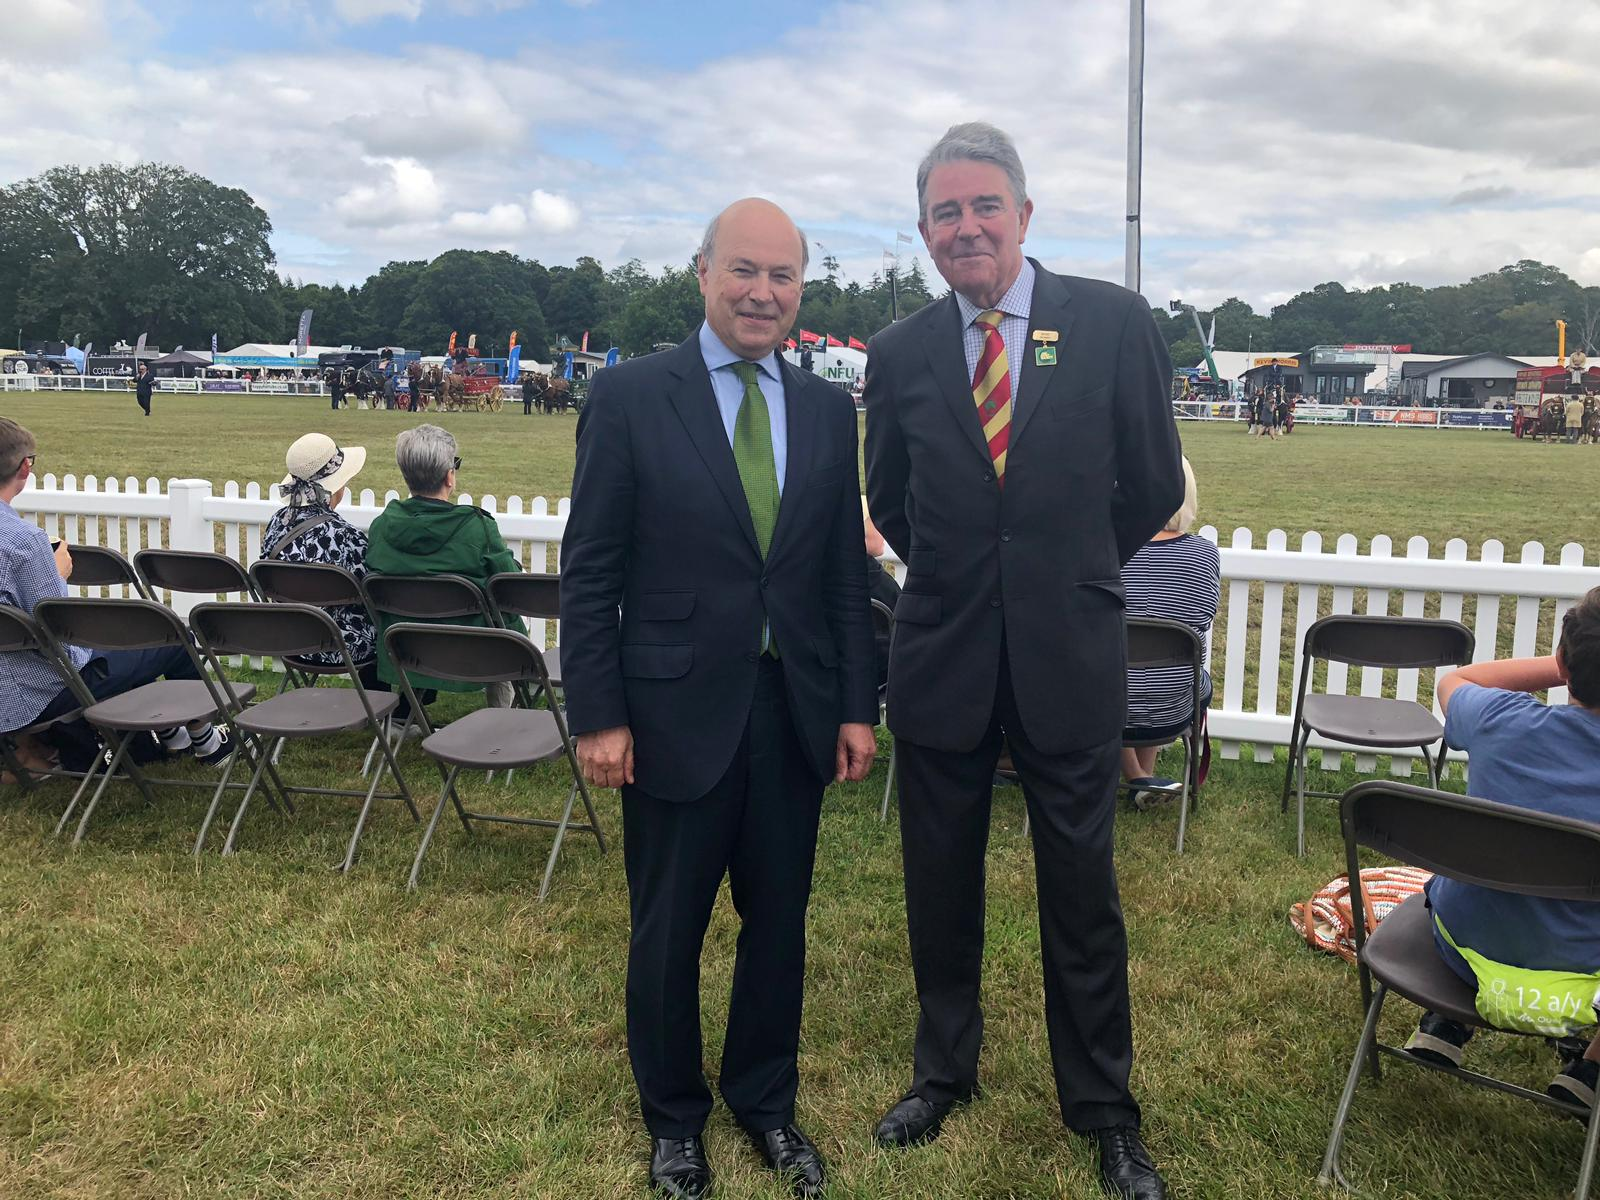 National Parks Minister Lord Gardiner with New Forest Show chair Chris Whitlock, Former Chairman of the New Forest & Hampshire Agricultural Show Society